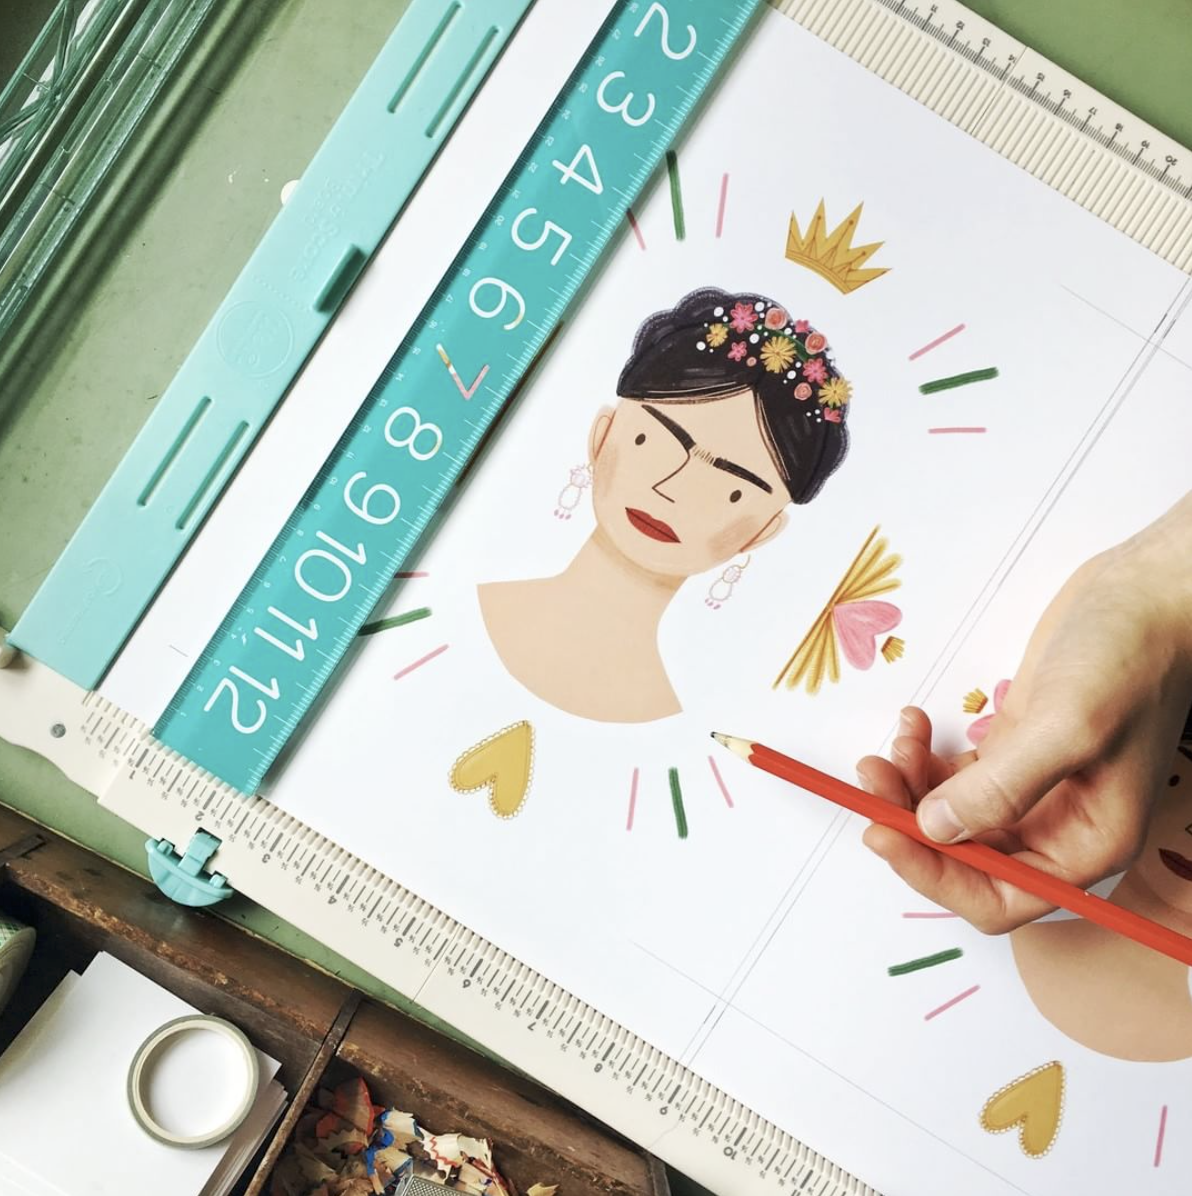 Cutting out a Frida Kahlo print in the Aviate Press art studio